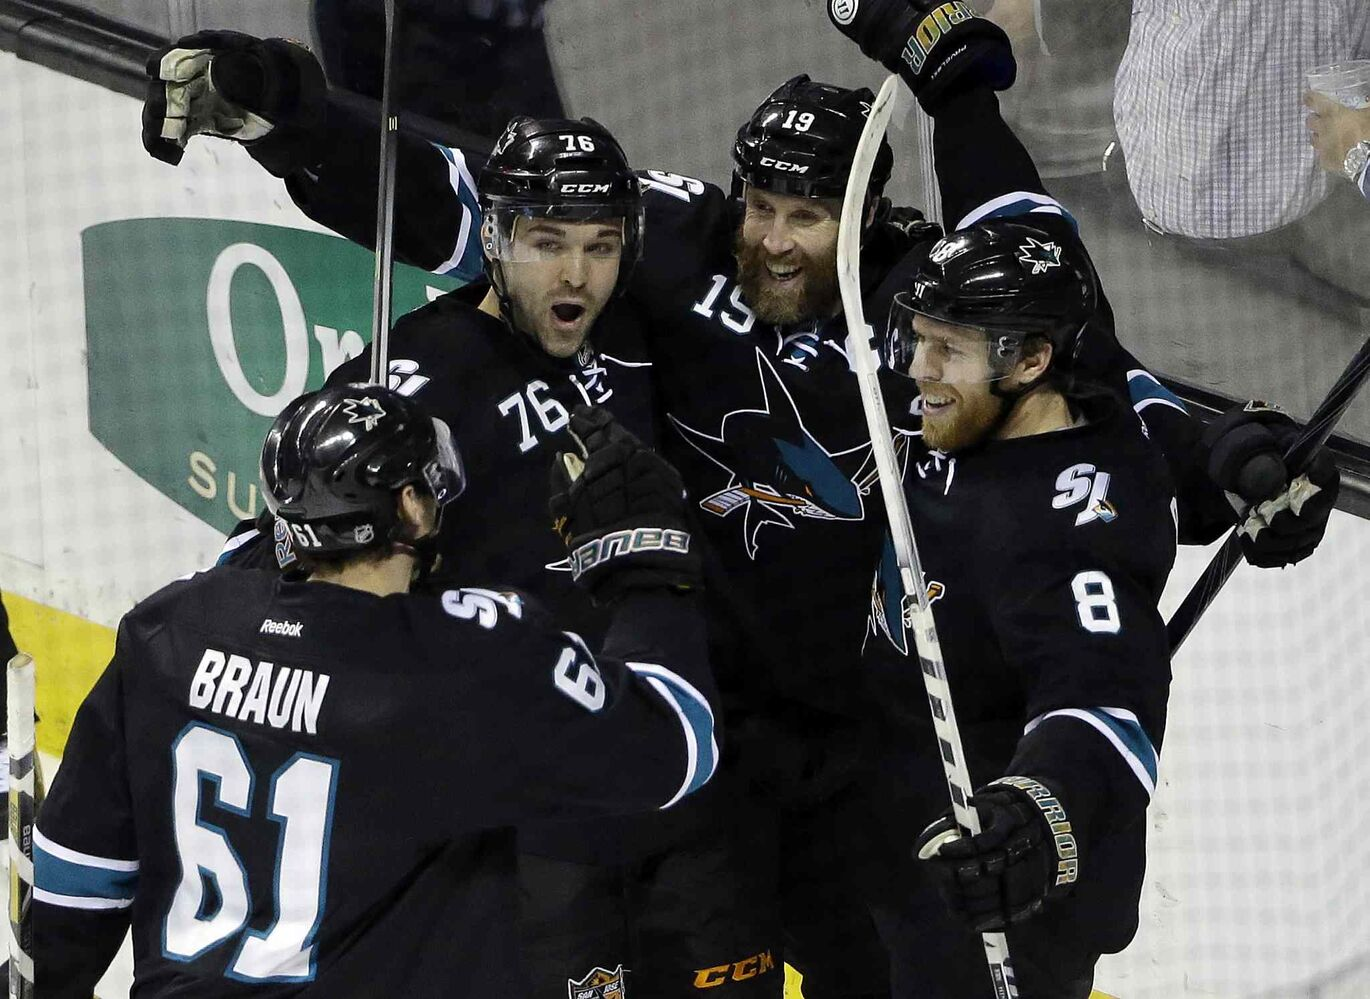 San Jose Sharks' Joe Pavelski (8) celebrates his goal with teammates during the third period of an NHL hockey game against the Winnipeg Jets on Thursday. San Jose won 1-0. (Marcio Jose Sanchez / The Associated Press)